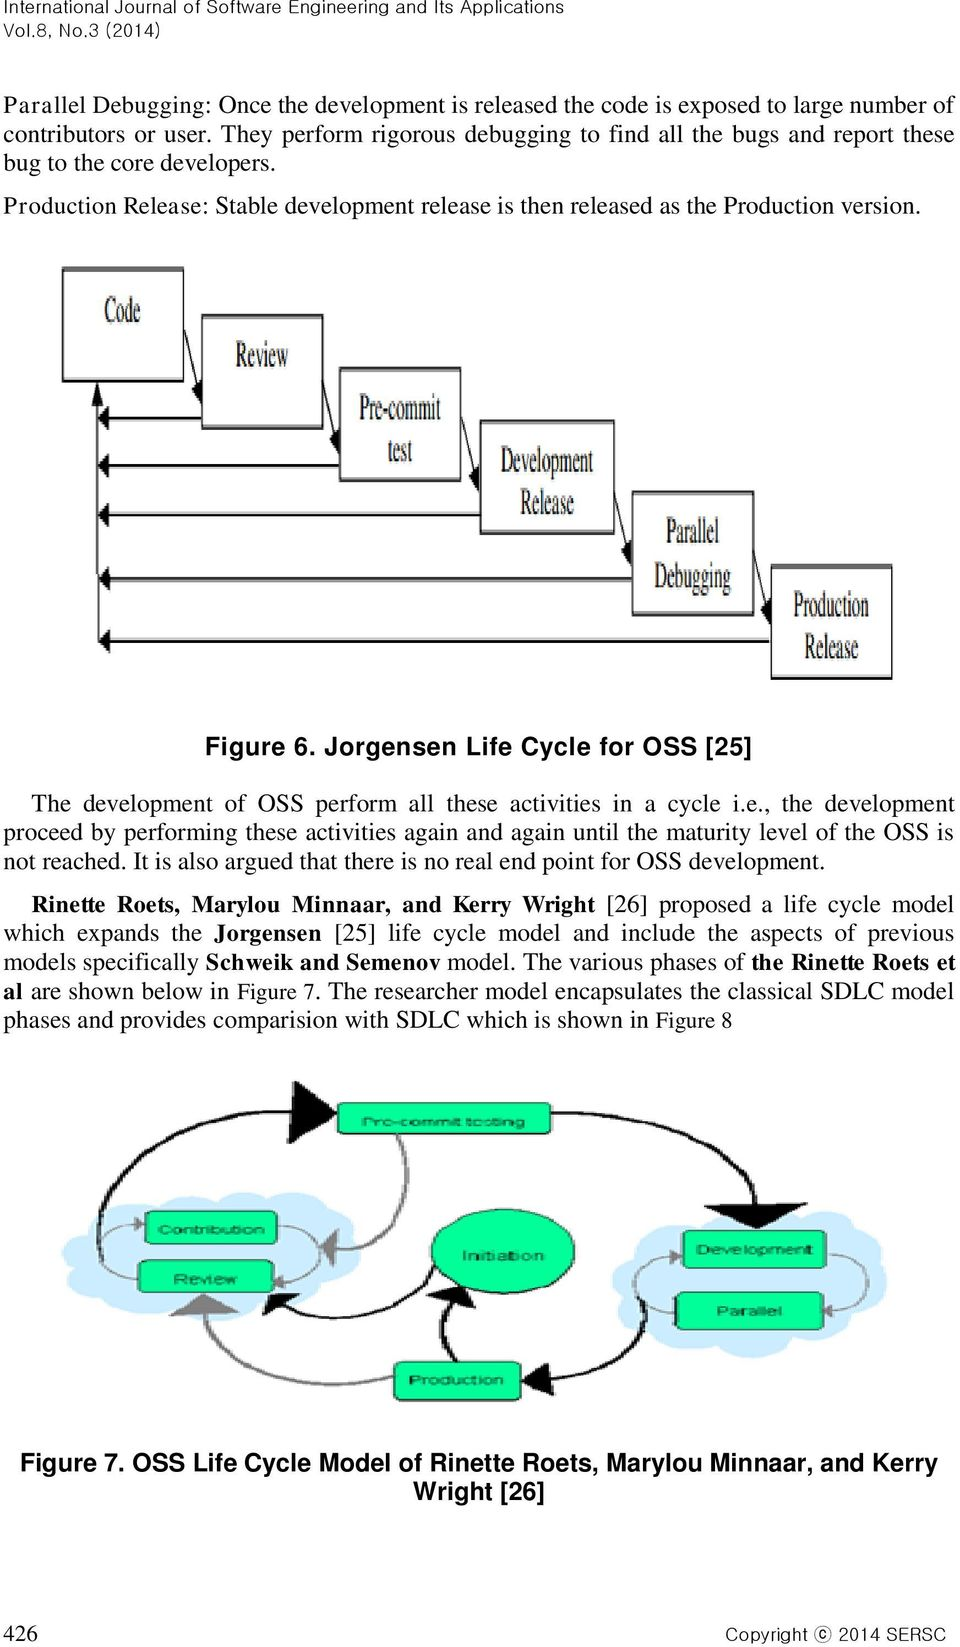 Jorgensen Life Cycle for OSS [25] The development of OSS perform all these activities in a cycle i.e., the development proceed by performing these activities again and again until the maturity level of the OSS is not reached.